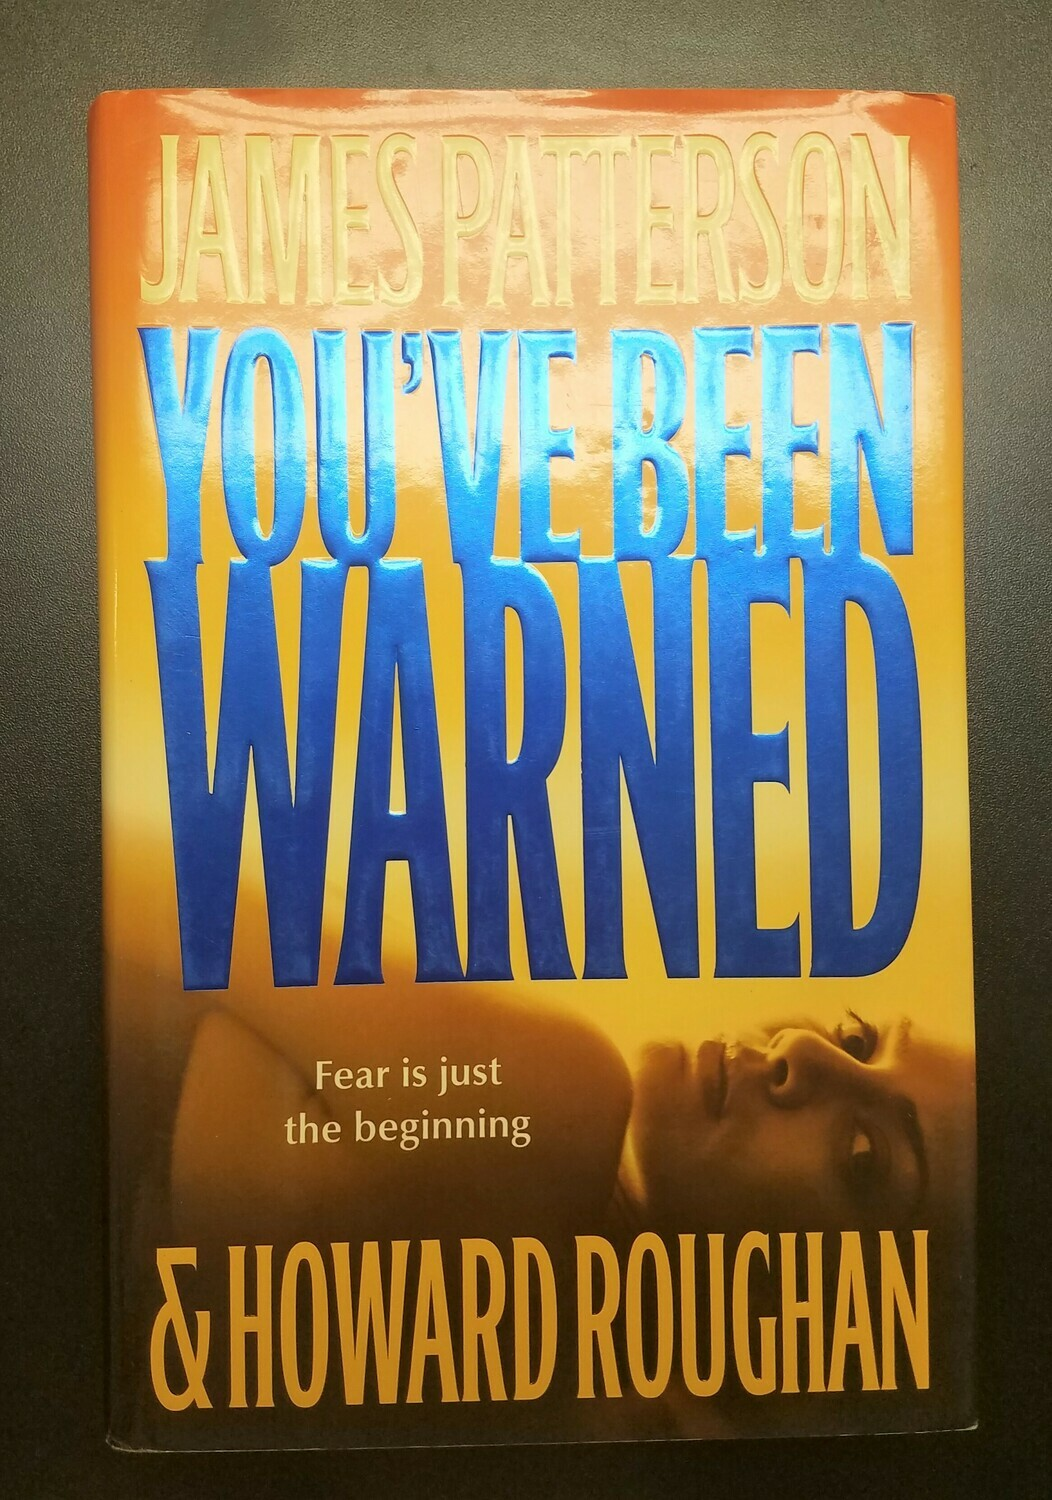 You've Been Warned by James Pattrson and Howard Roughan